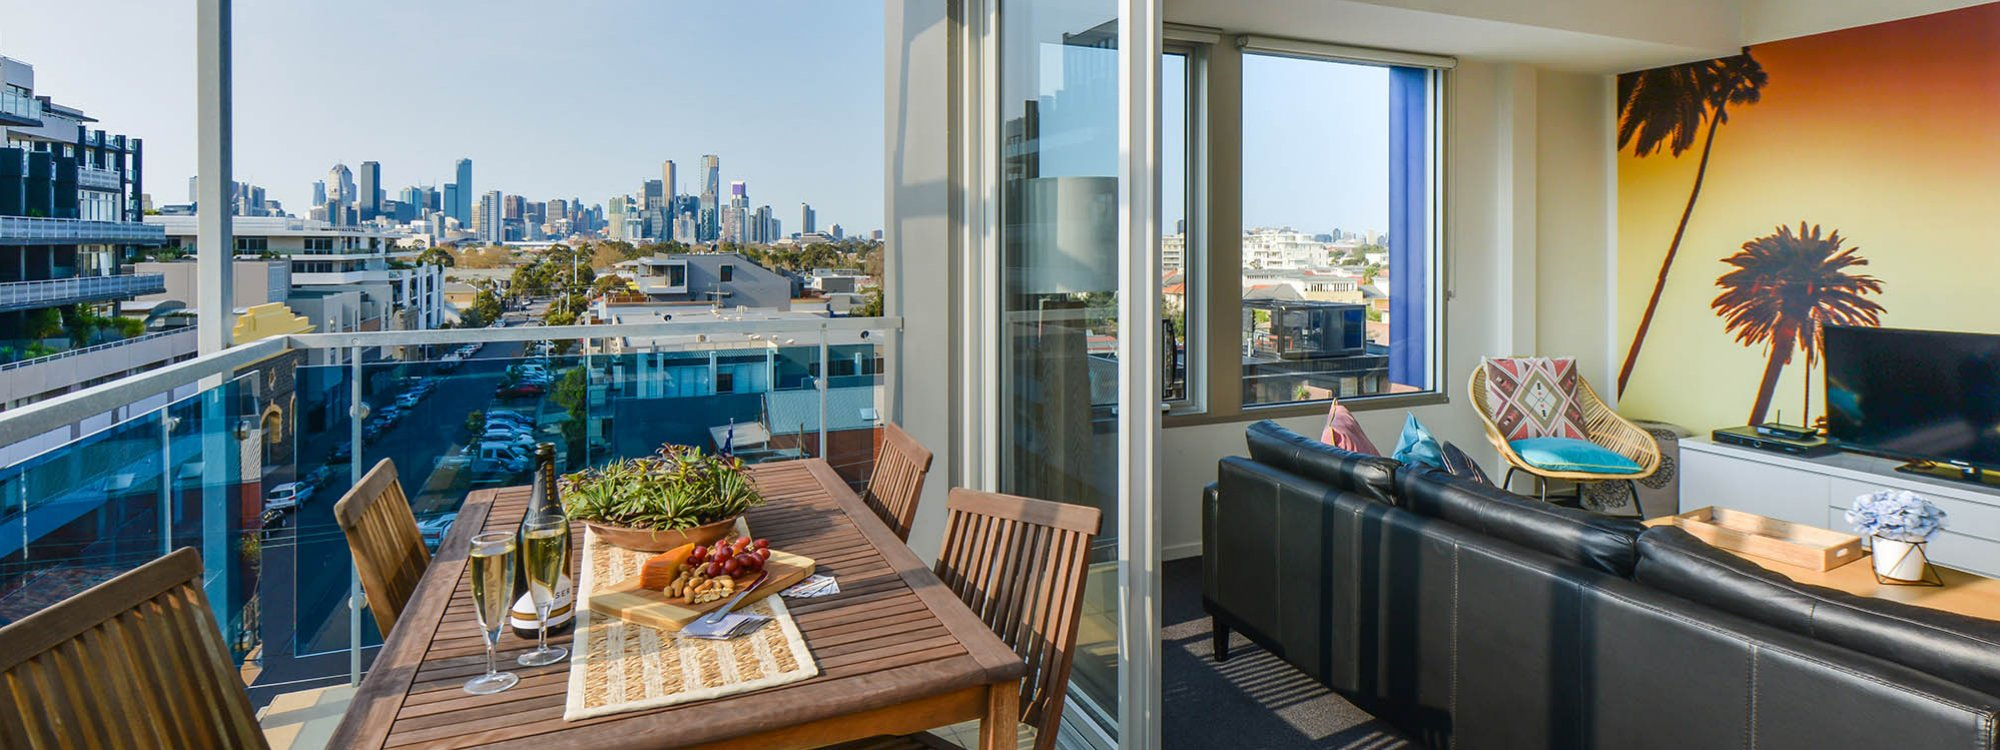 Zinc Views 501 - Port Melbourne - Balcony